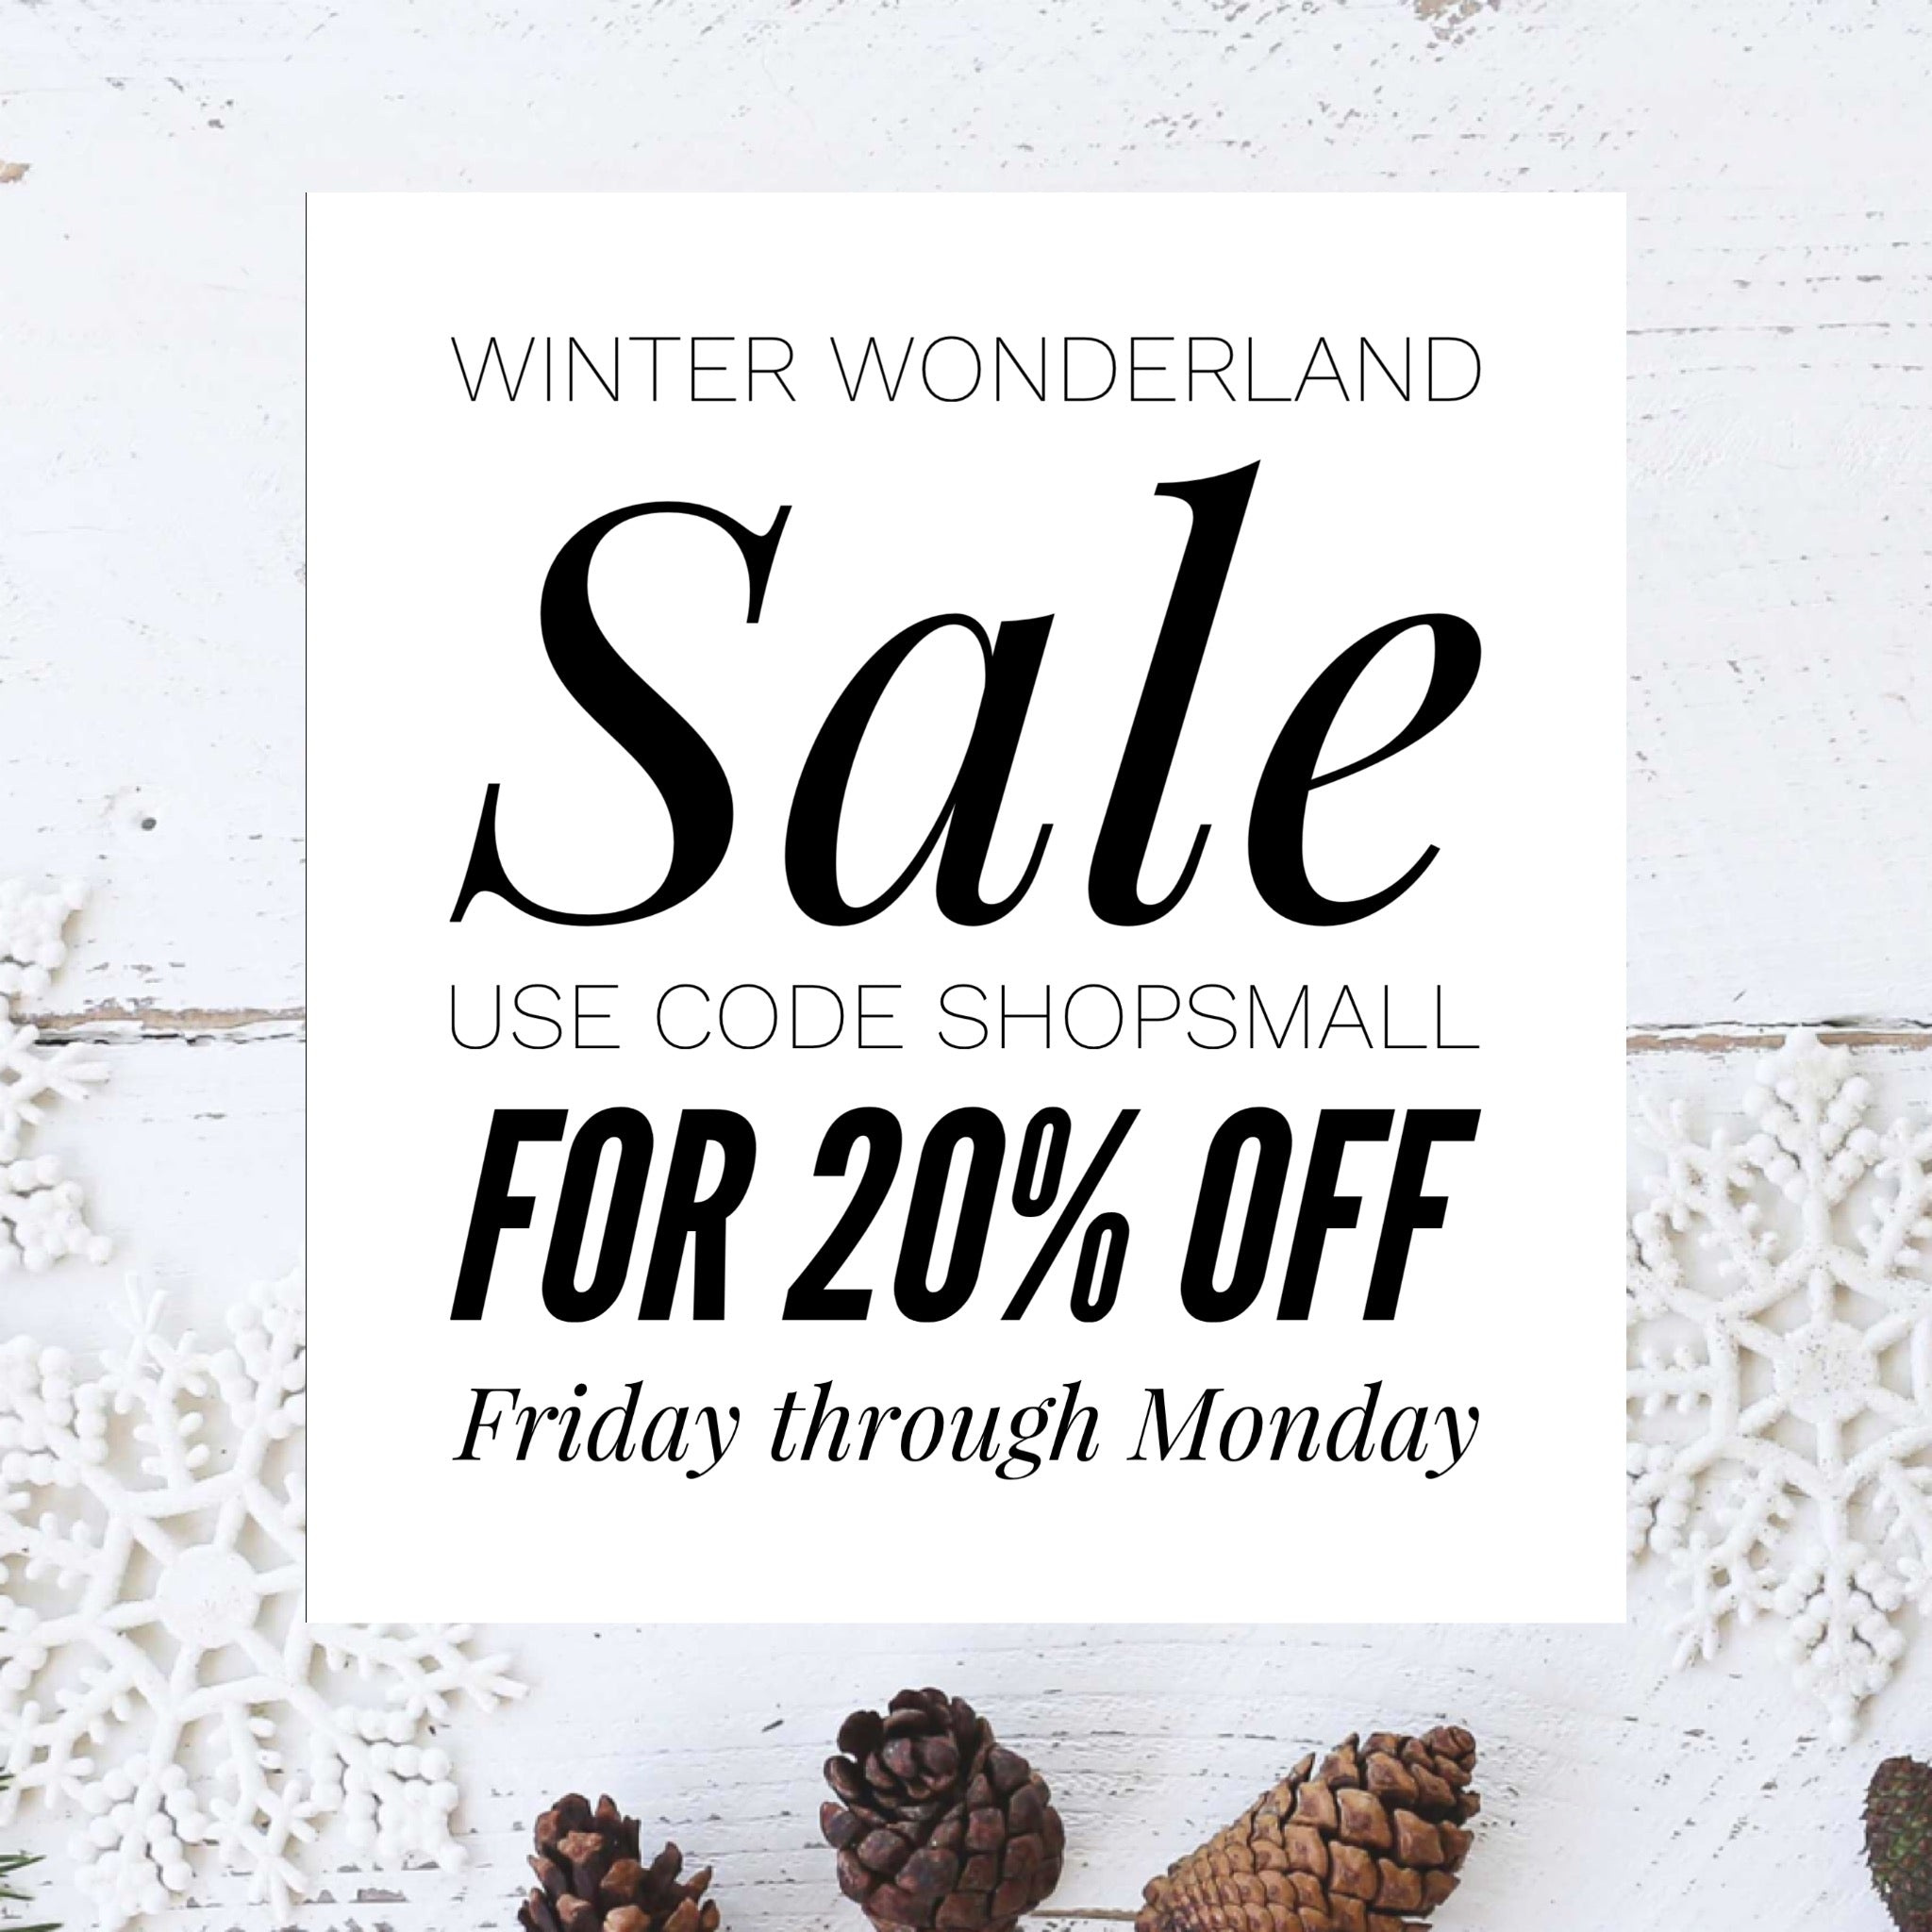 Winter Wonderland Sale Tate & Adele